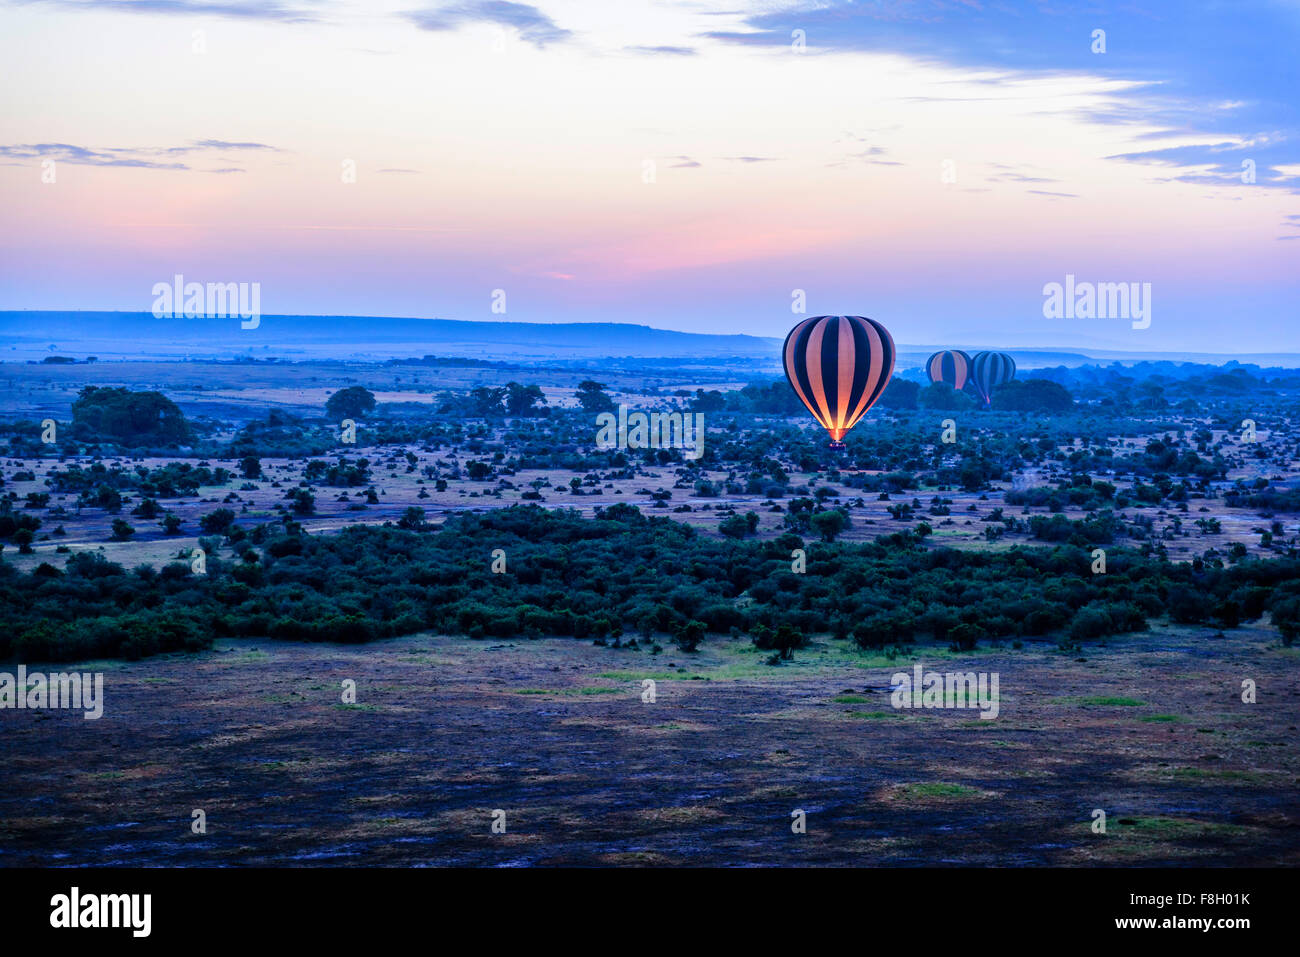 Hot air balloon flying over savanna landscape - Stock Image